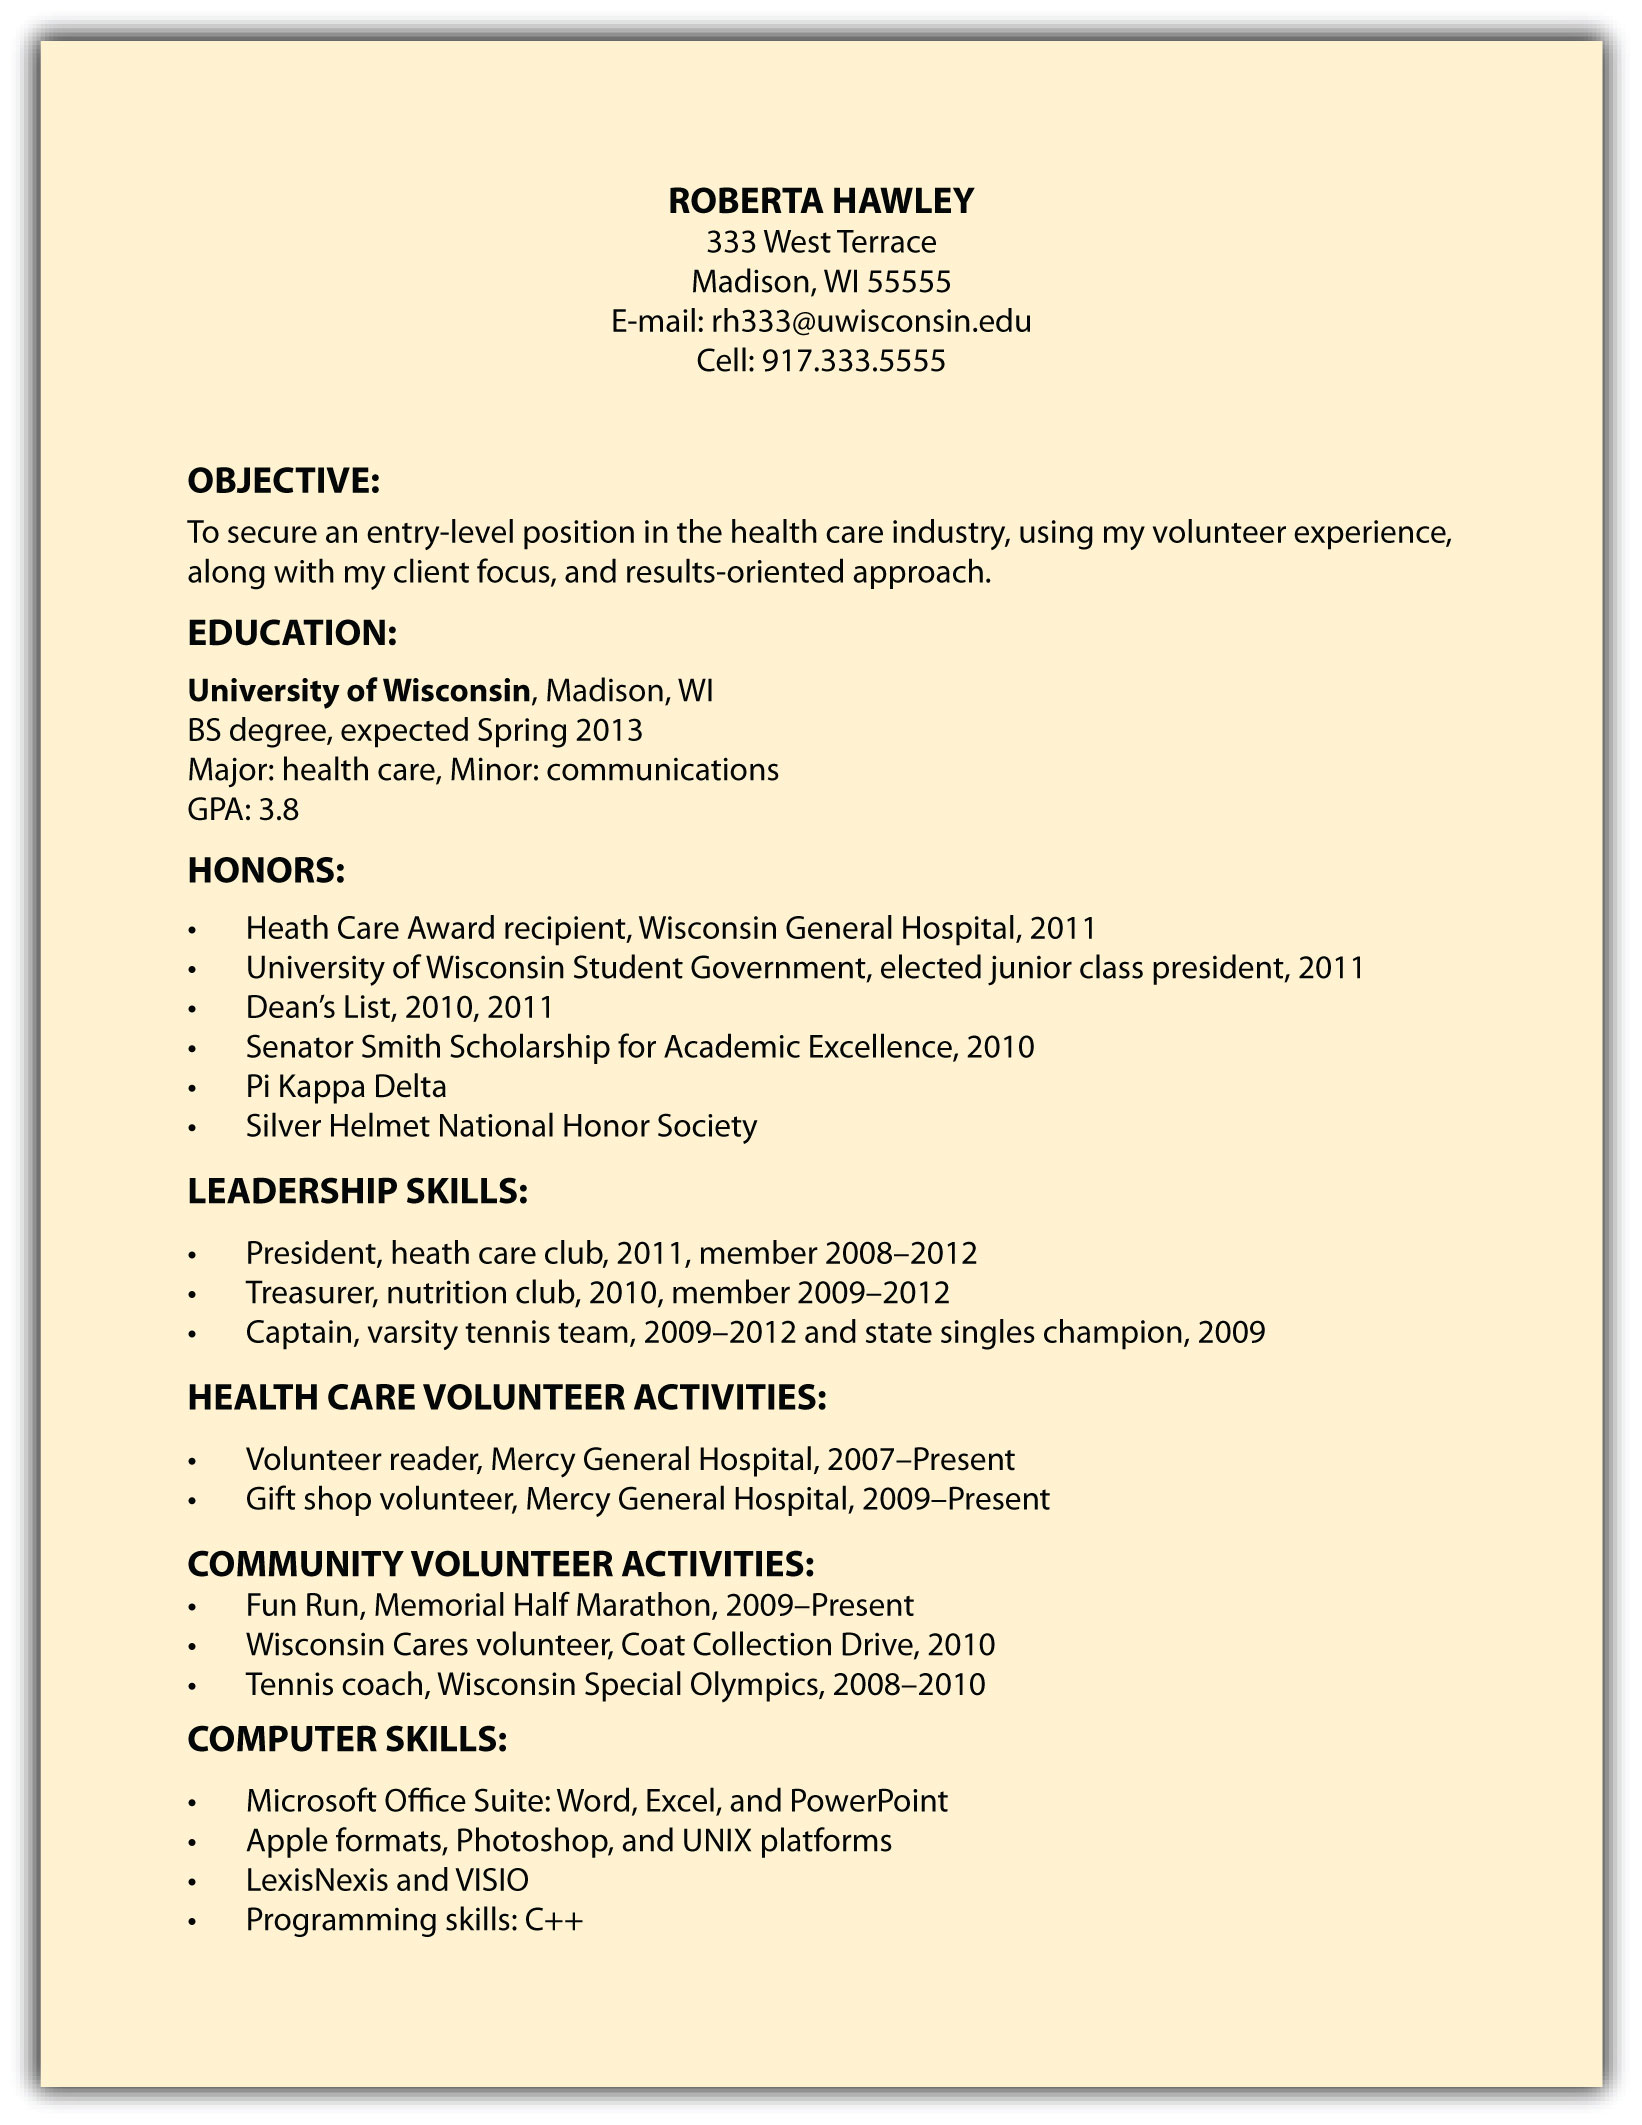 chronological resumes sample templates and examples chronological format resume functional rsums chronological format resume - Simple Resumes Examples